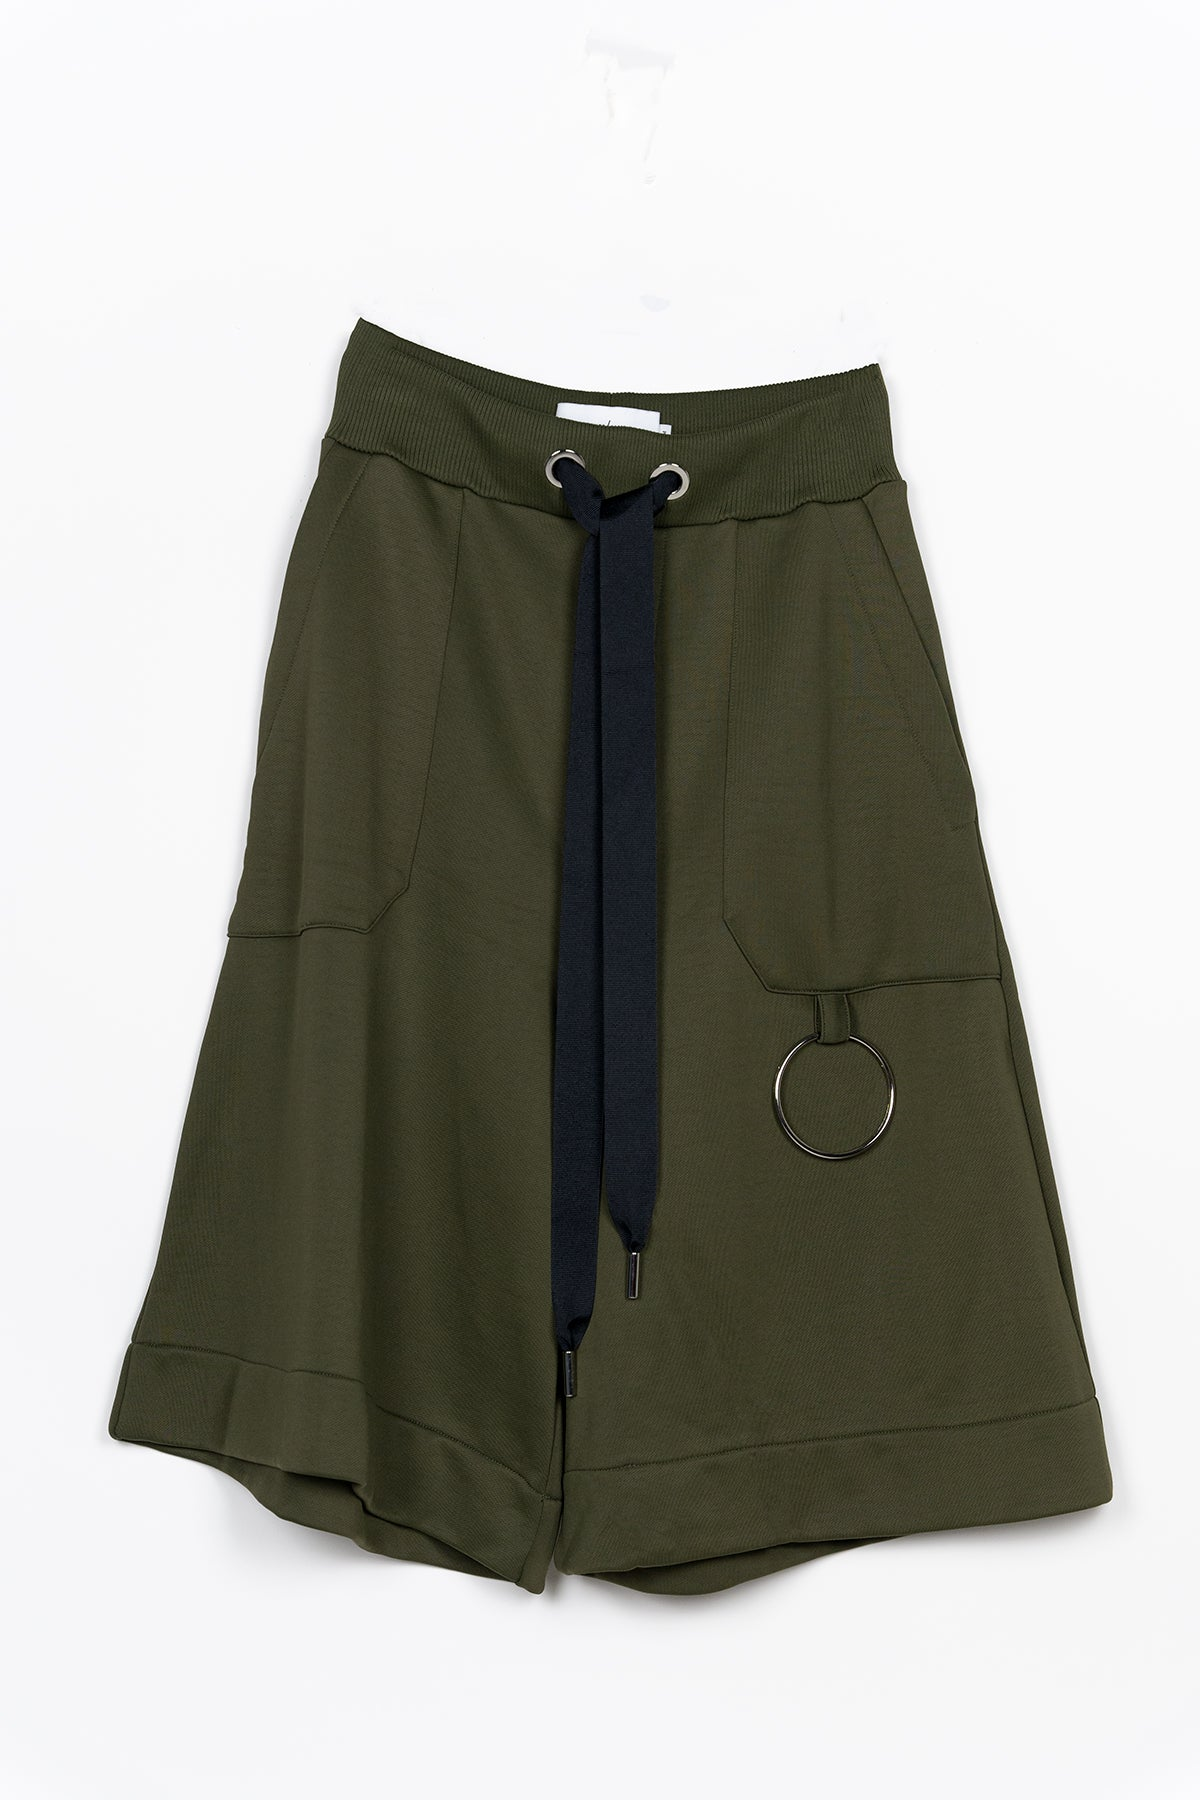 KHAKI TRACKSUIT FLEECE SHORTS